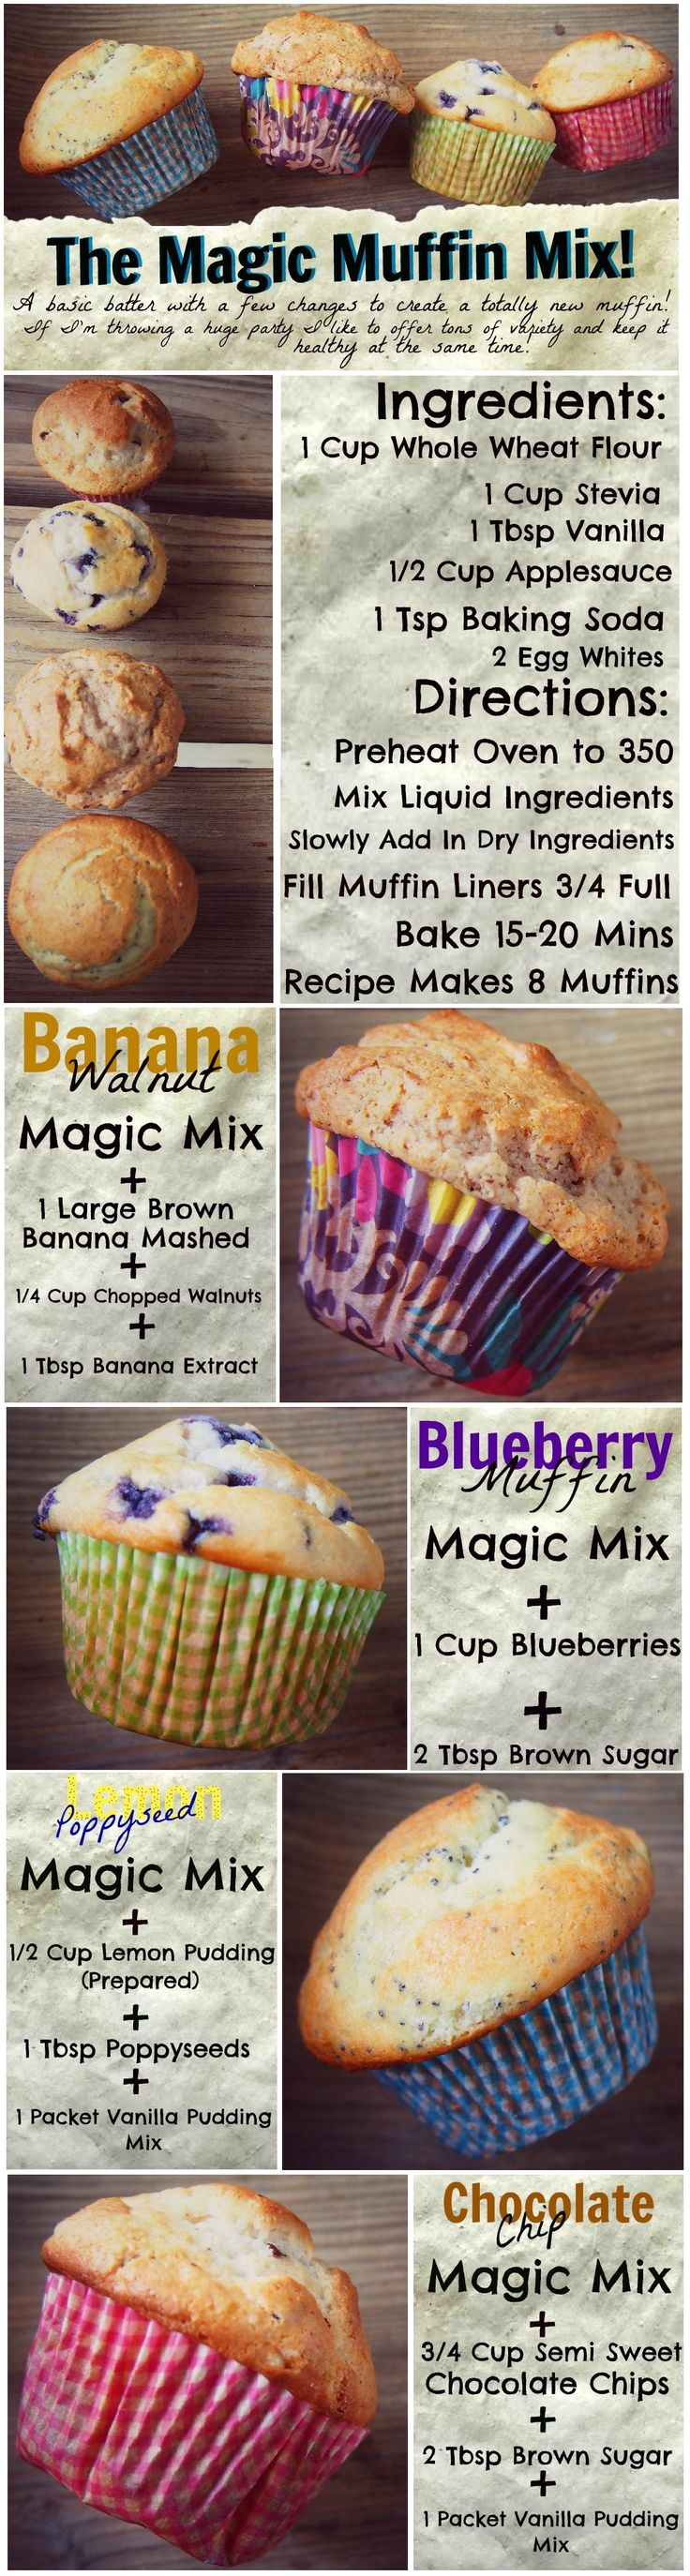 The Magic Muffin Mix! 1 Recipe for 4 Different Muffins!